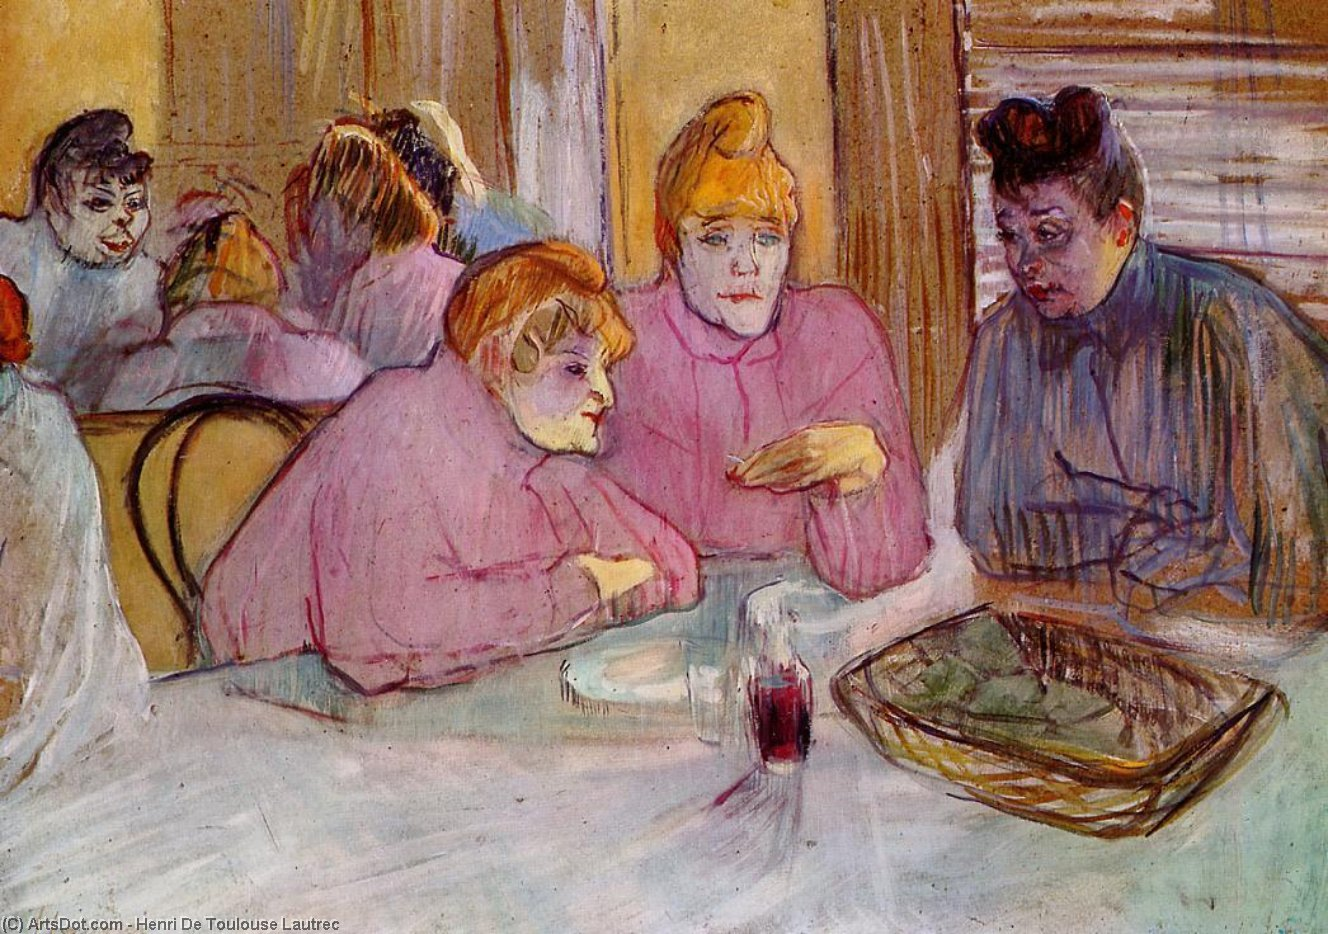 donna in un bordello , olio su tavola di Henri De Toulouse Lautrec (1864-1901, France)